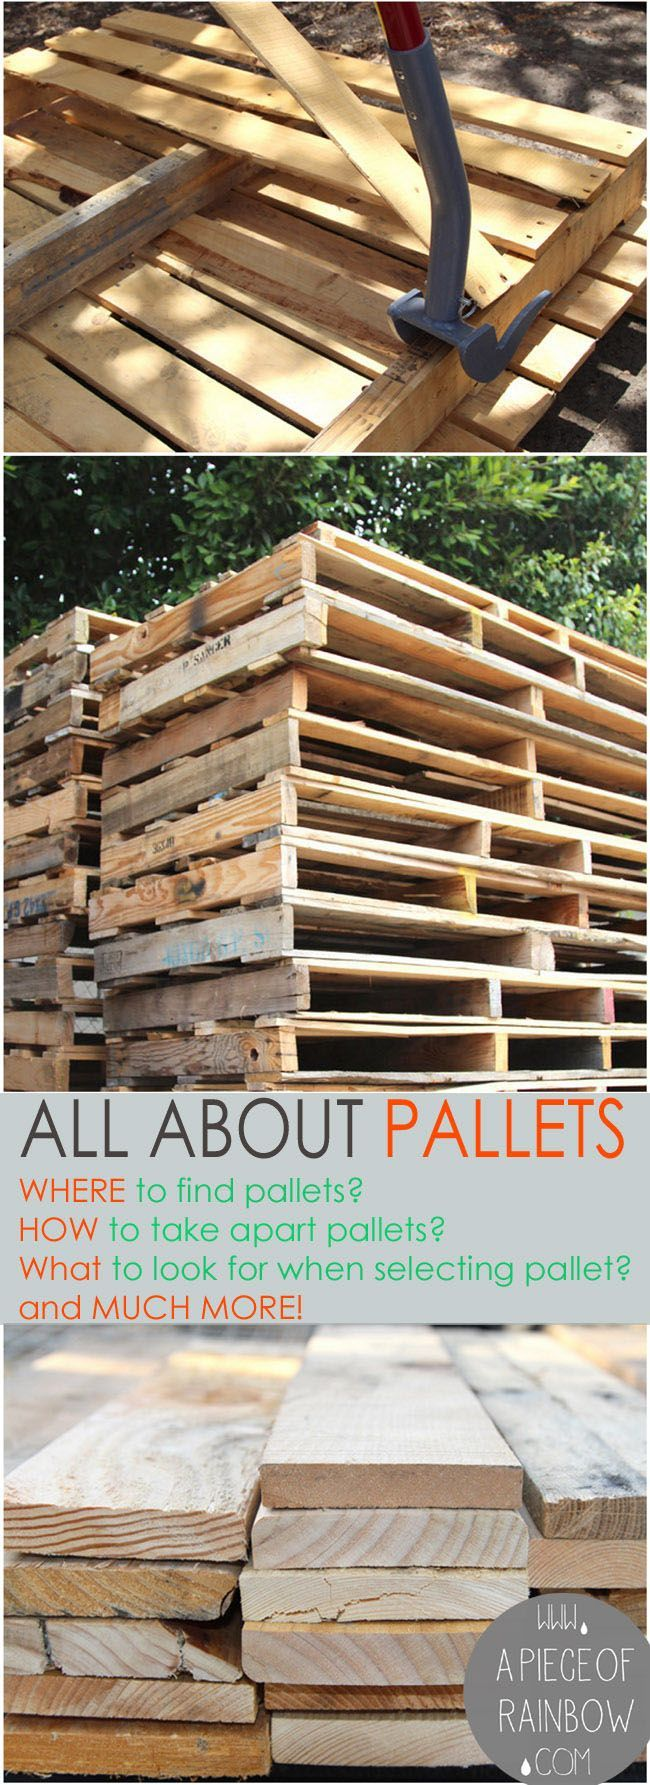 25 best ideas about free wood pallets on pinterest free wooden pallets pallet designs and - Diy projects with wooden palletsideas easy to carry out ...